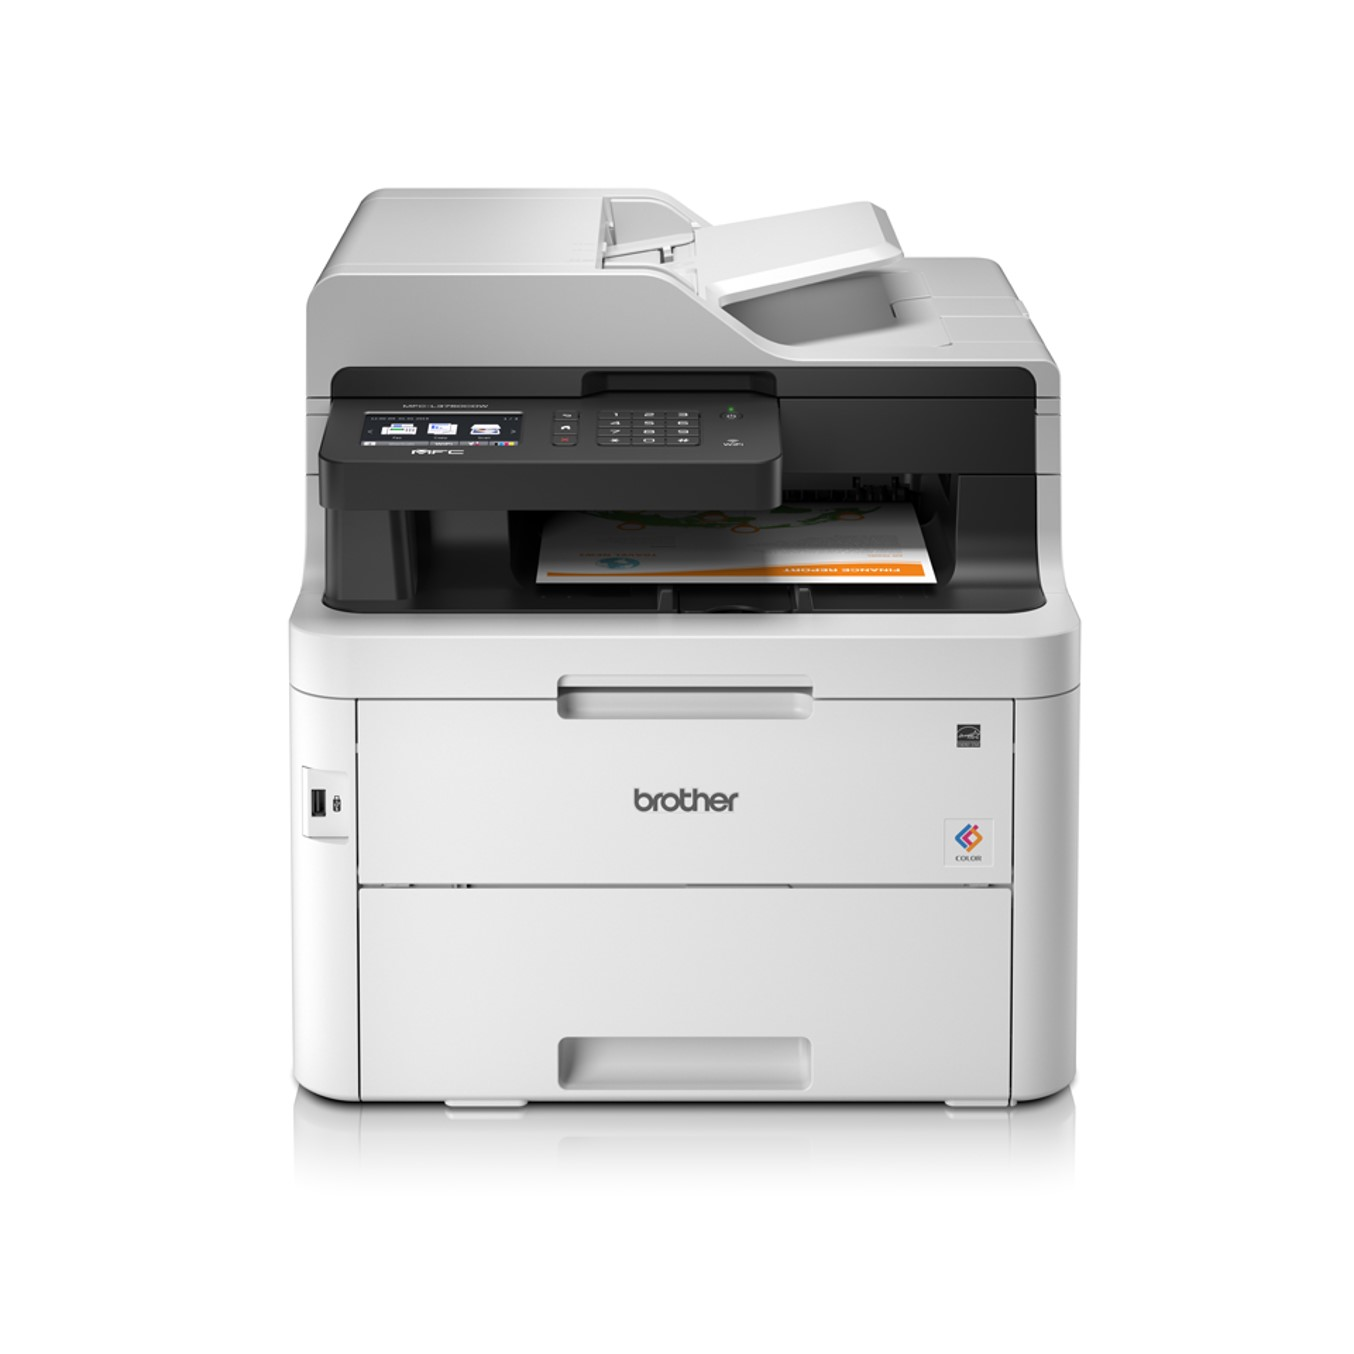 Multifuncion Brother Laser Color Mfc-l3750cdw Fax/ A4/ 24ppm/ 512mb/ Usb/ Red/ Wifi/ Wifi Direct/ Duplex Impresion/ Conectividad Movil/ Adf 50 Hojas 0.0